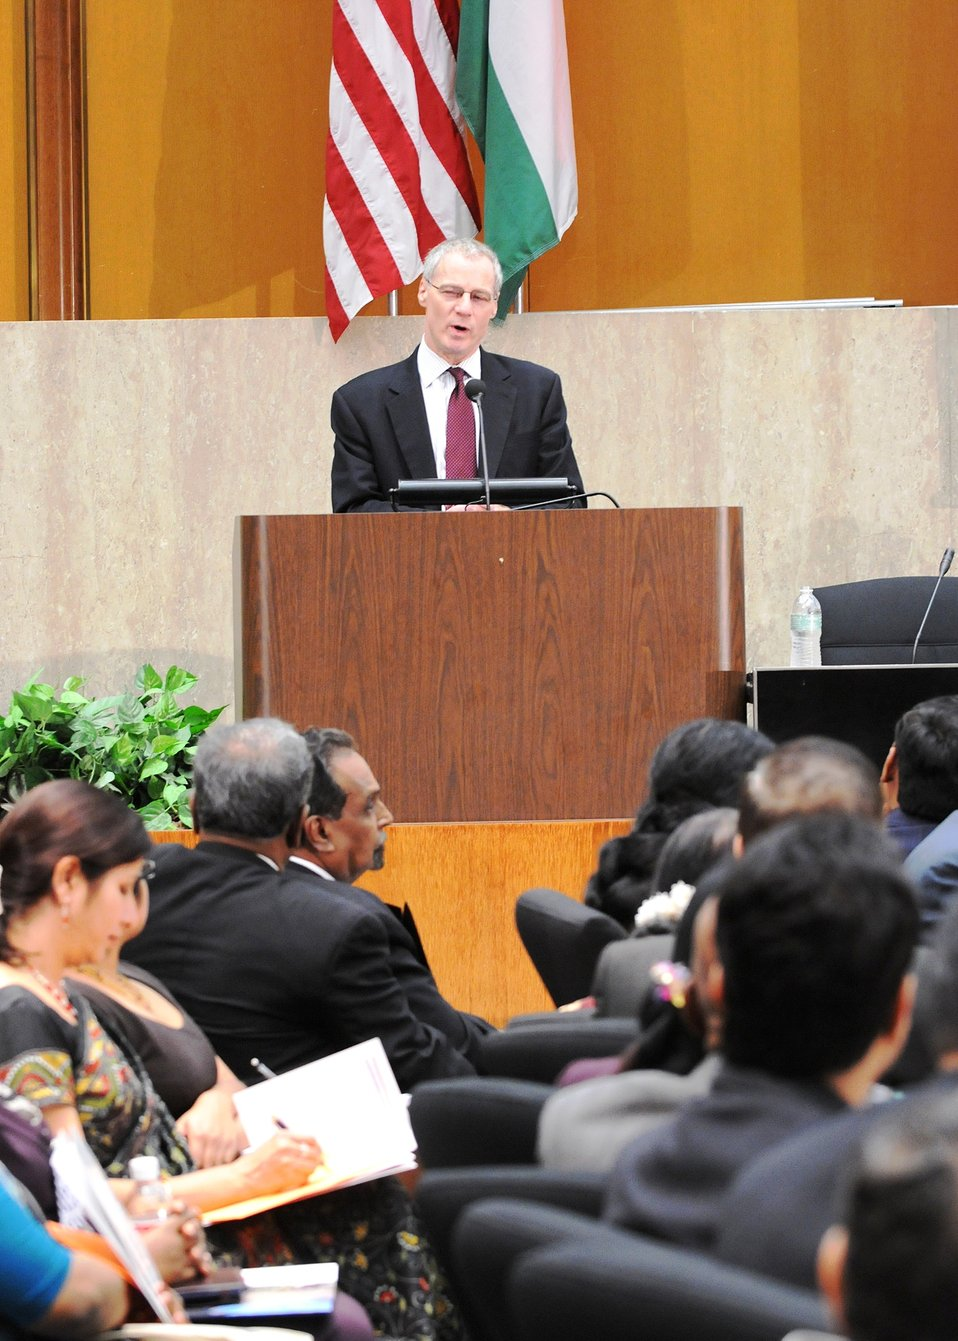 U.S.-India Business Council President Somers Delivers Welcoming Remarks